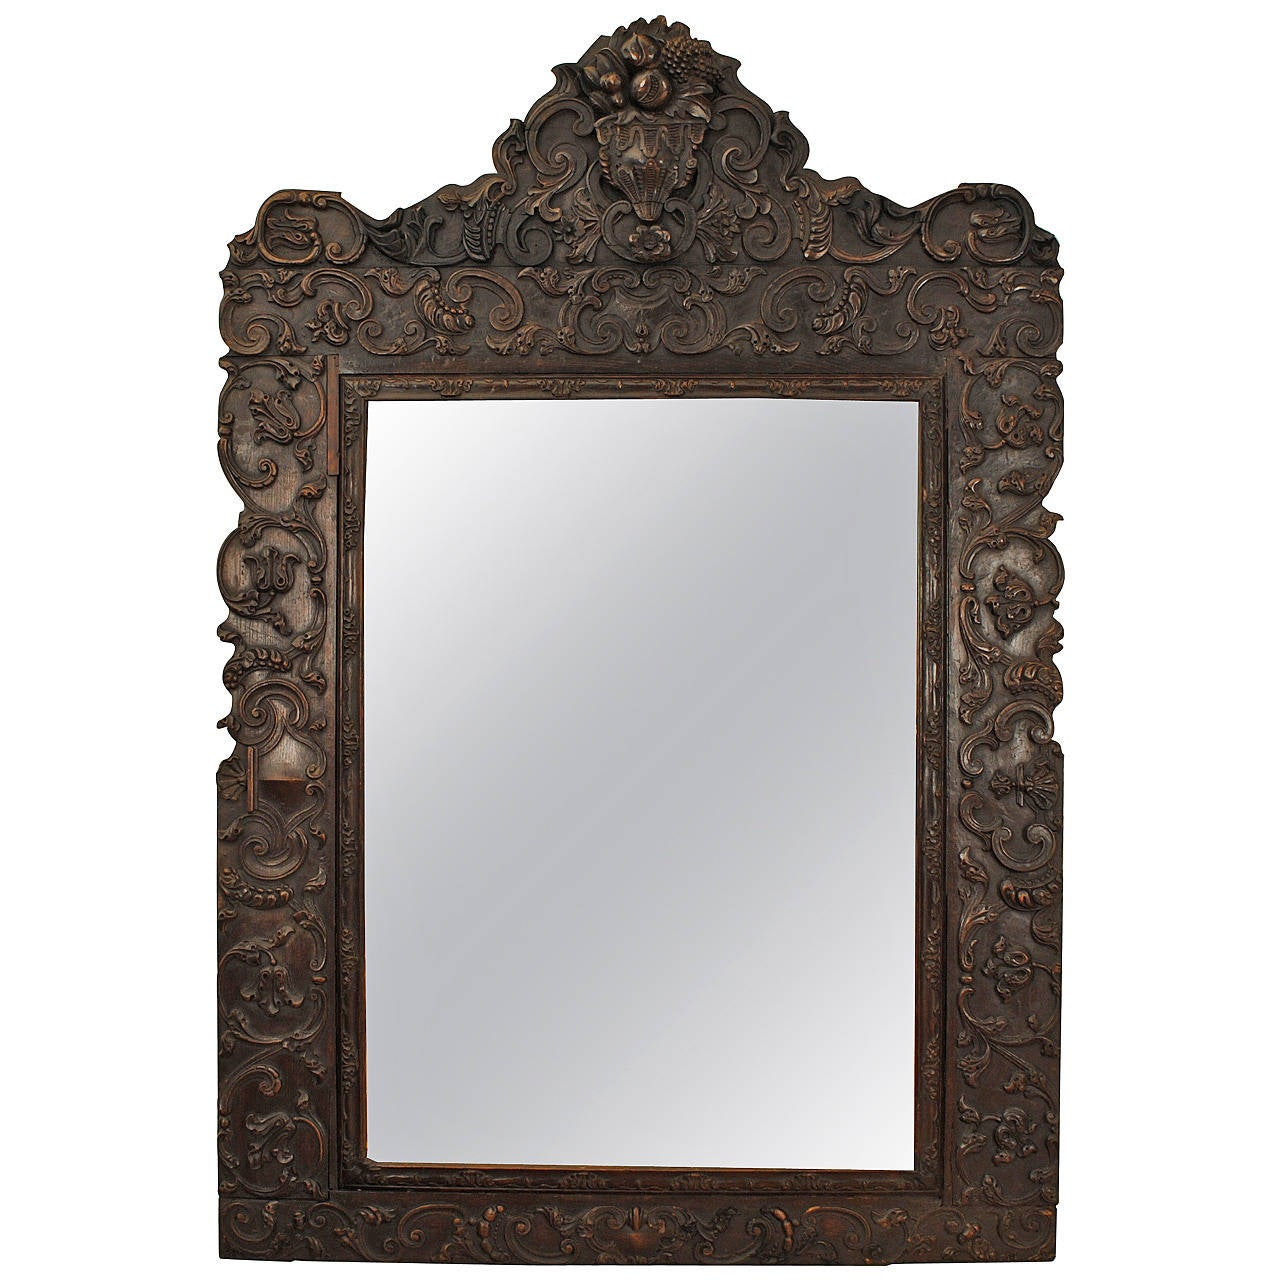 Arched gilt mirror at 1stdibs - Portuguese Rococo Sizable Carved Walnut Mirror 18th Century 1